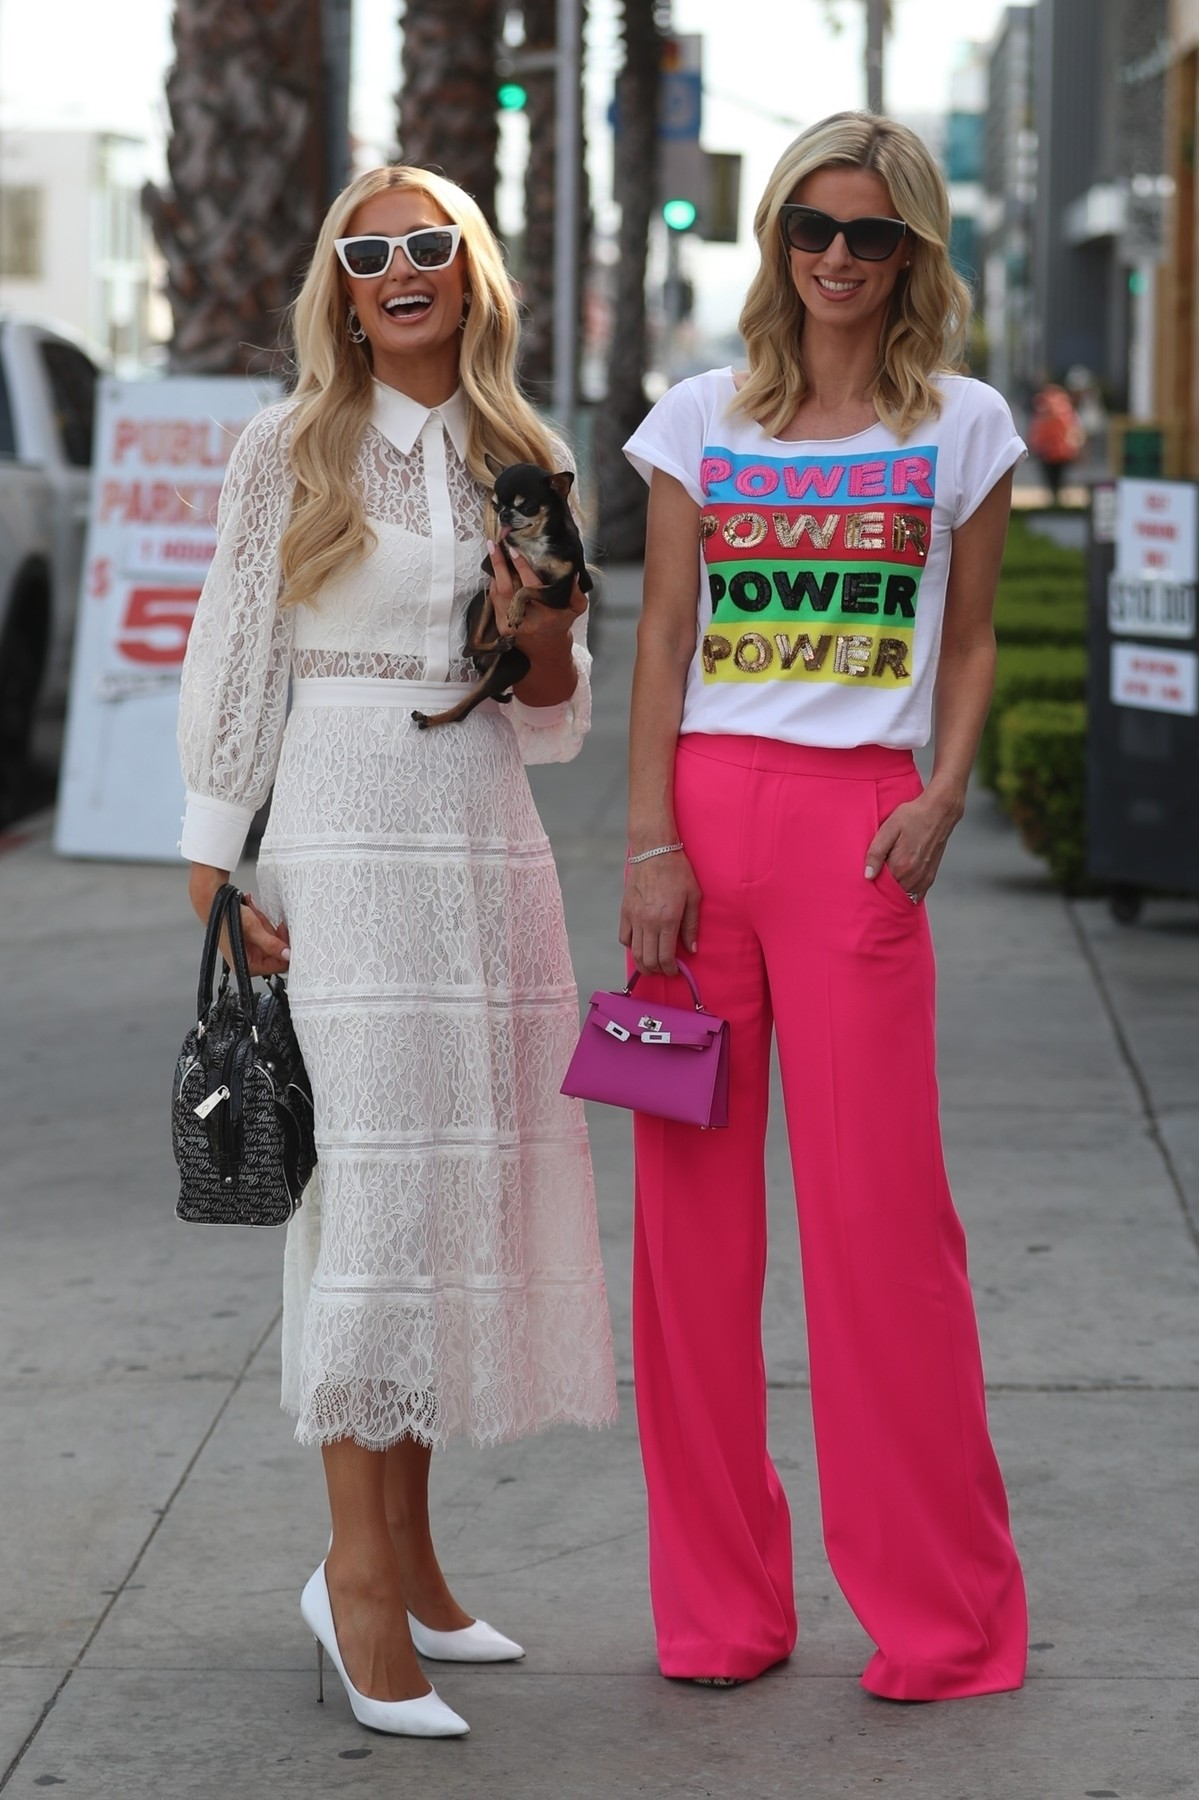 West Hollywood, CA  - Paris and Nicky Hilton pose up for photos after shopping together at Alice & Olivia in West Hollywood.  BACKGRID USA 5 MARCH 2020,Image: 503628565, License: Rights-managed, Restrictions: , Model Release: no, Credit line: HollywoodFixTV.com / BACKGRID / Backgrid USA / Profimedia